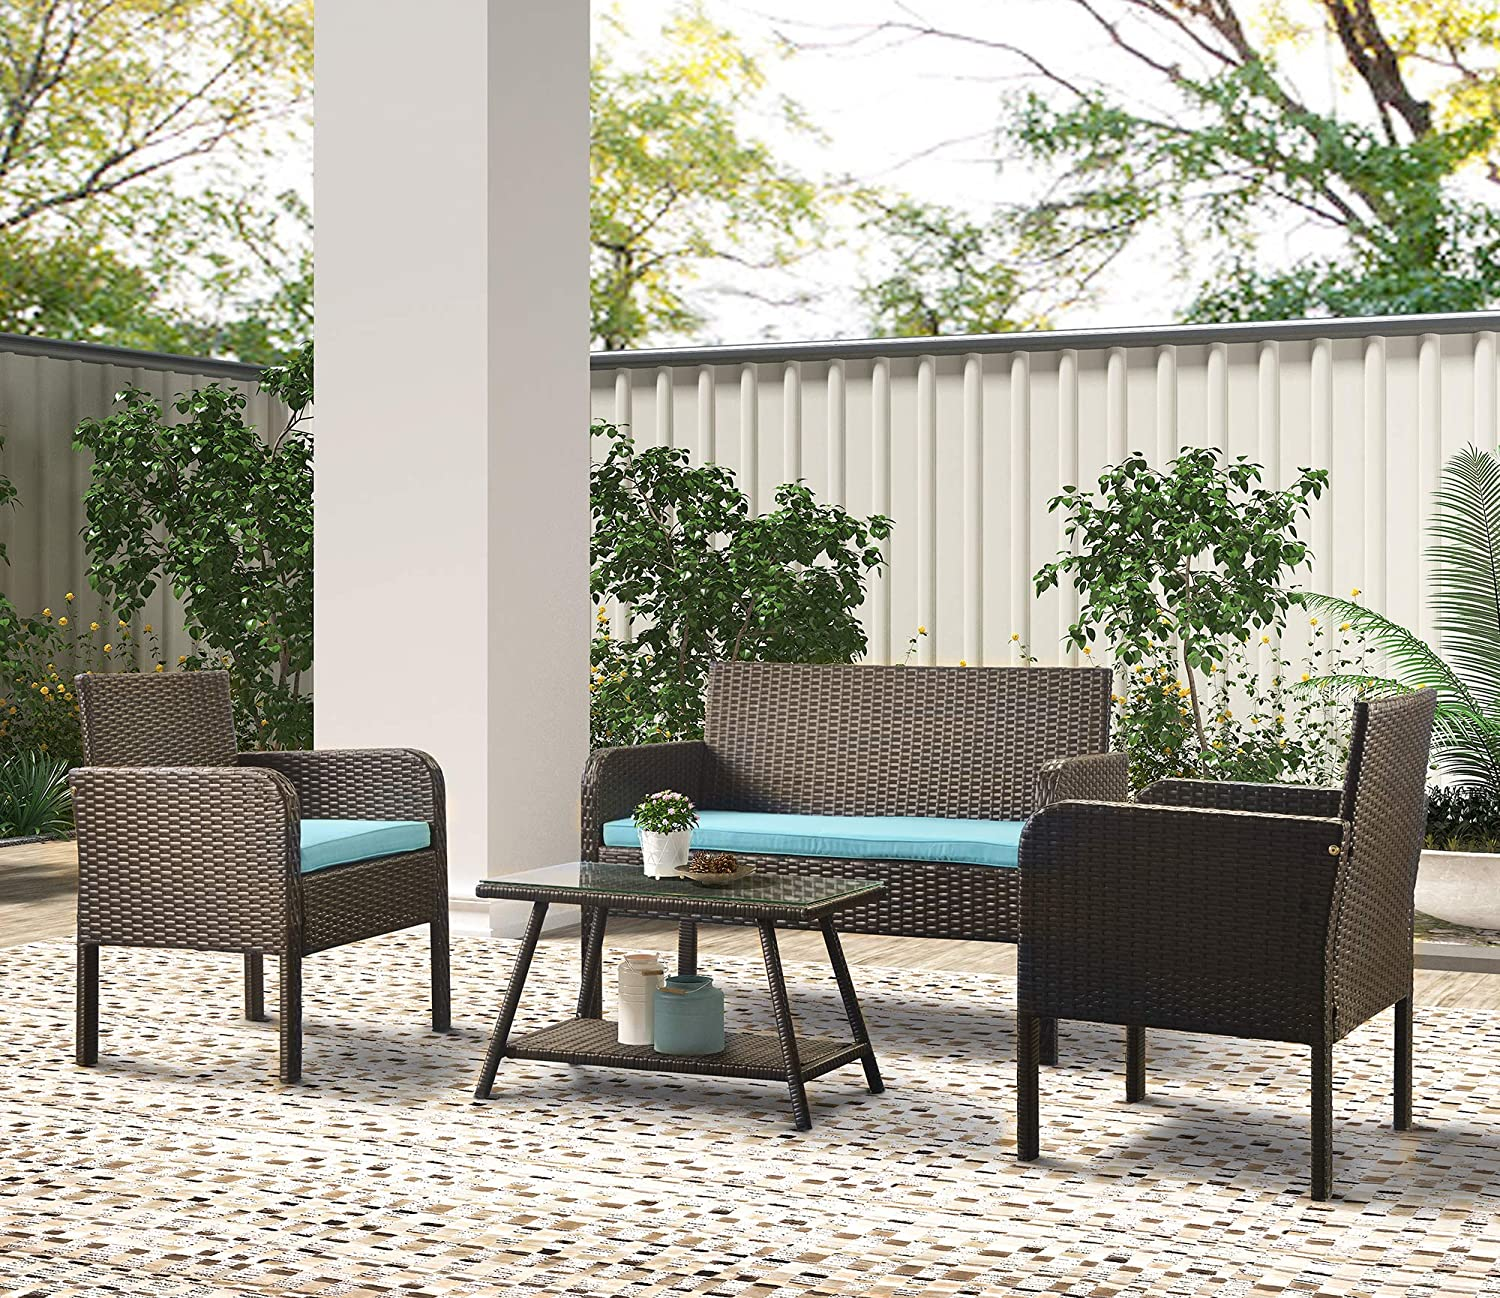 Ranking TOP7 4 Piece Rattan Sofa Seating Cushions with Outdoor Ratten Max 85% OFF Group